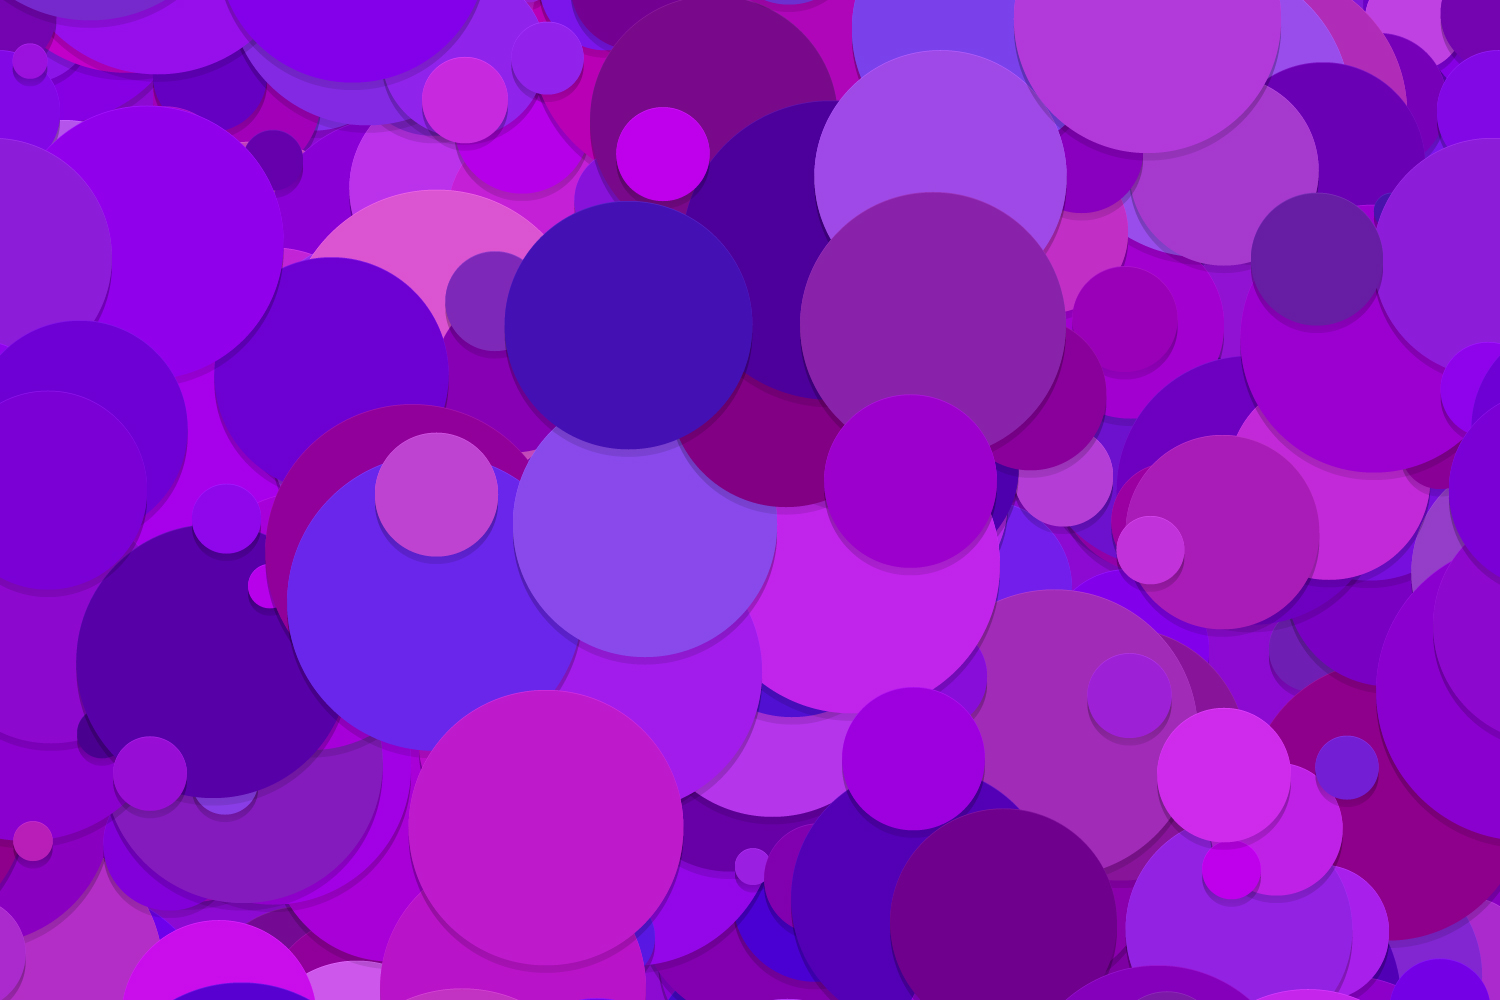 40 Seamless Circle Backgrounds (AI, EPS, JPG 5000x5000) example image 10